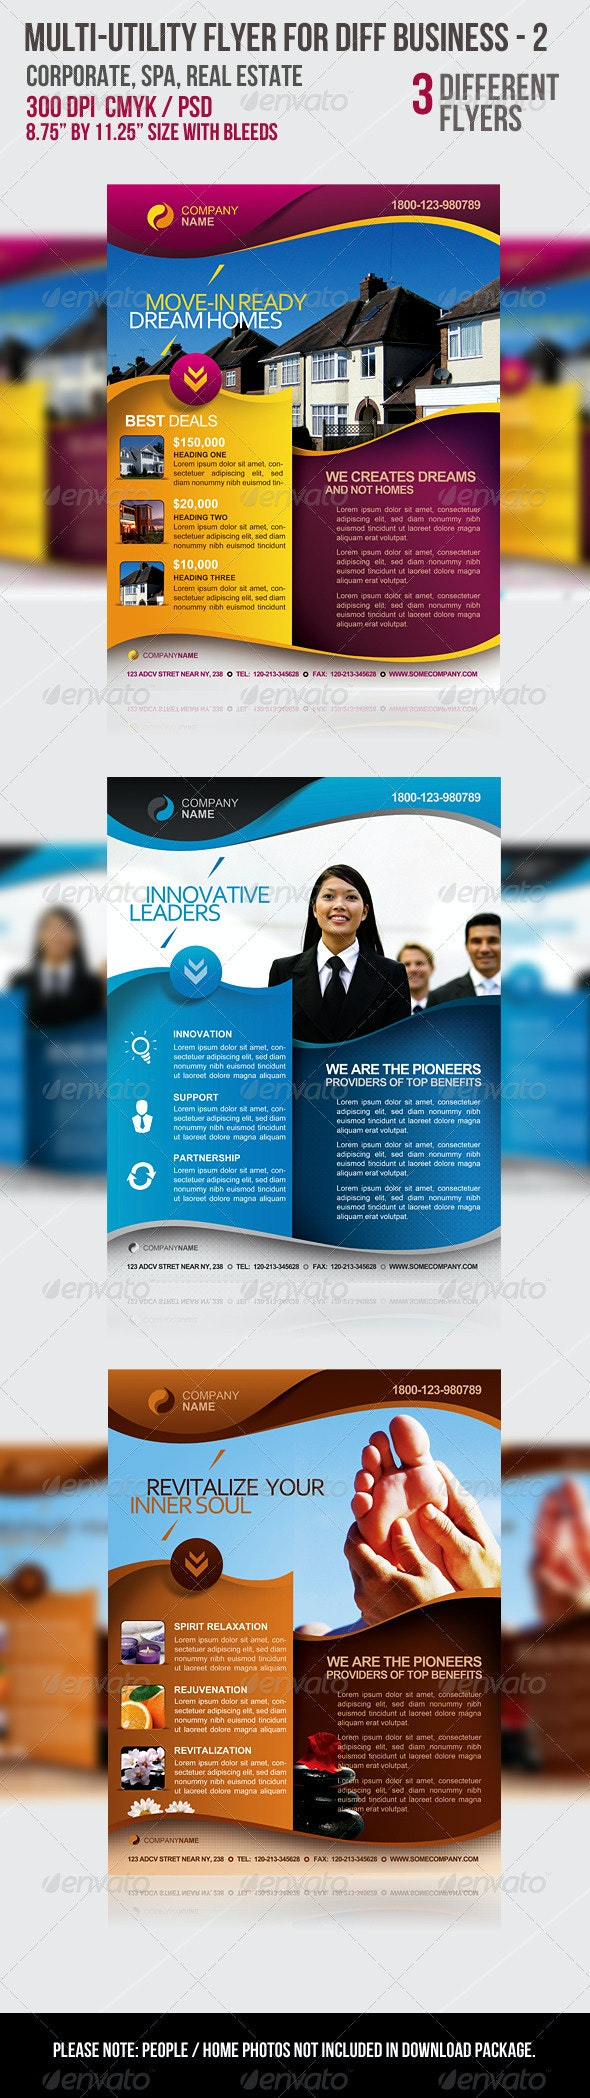 Multi-utility Flyer For Different Business - 2 - Flyers Print Templates